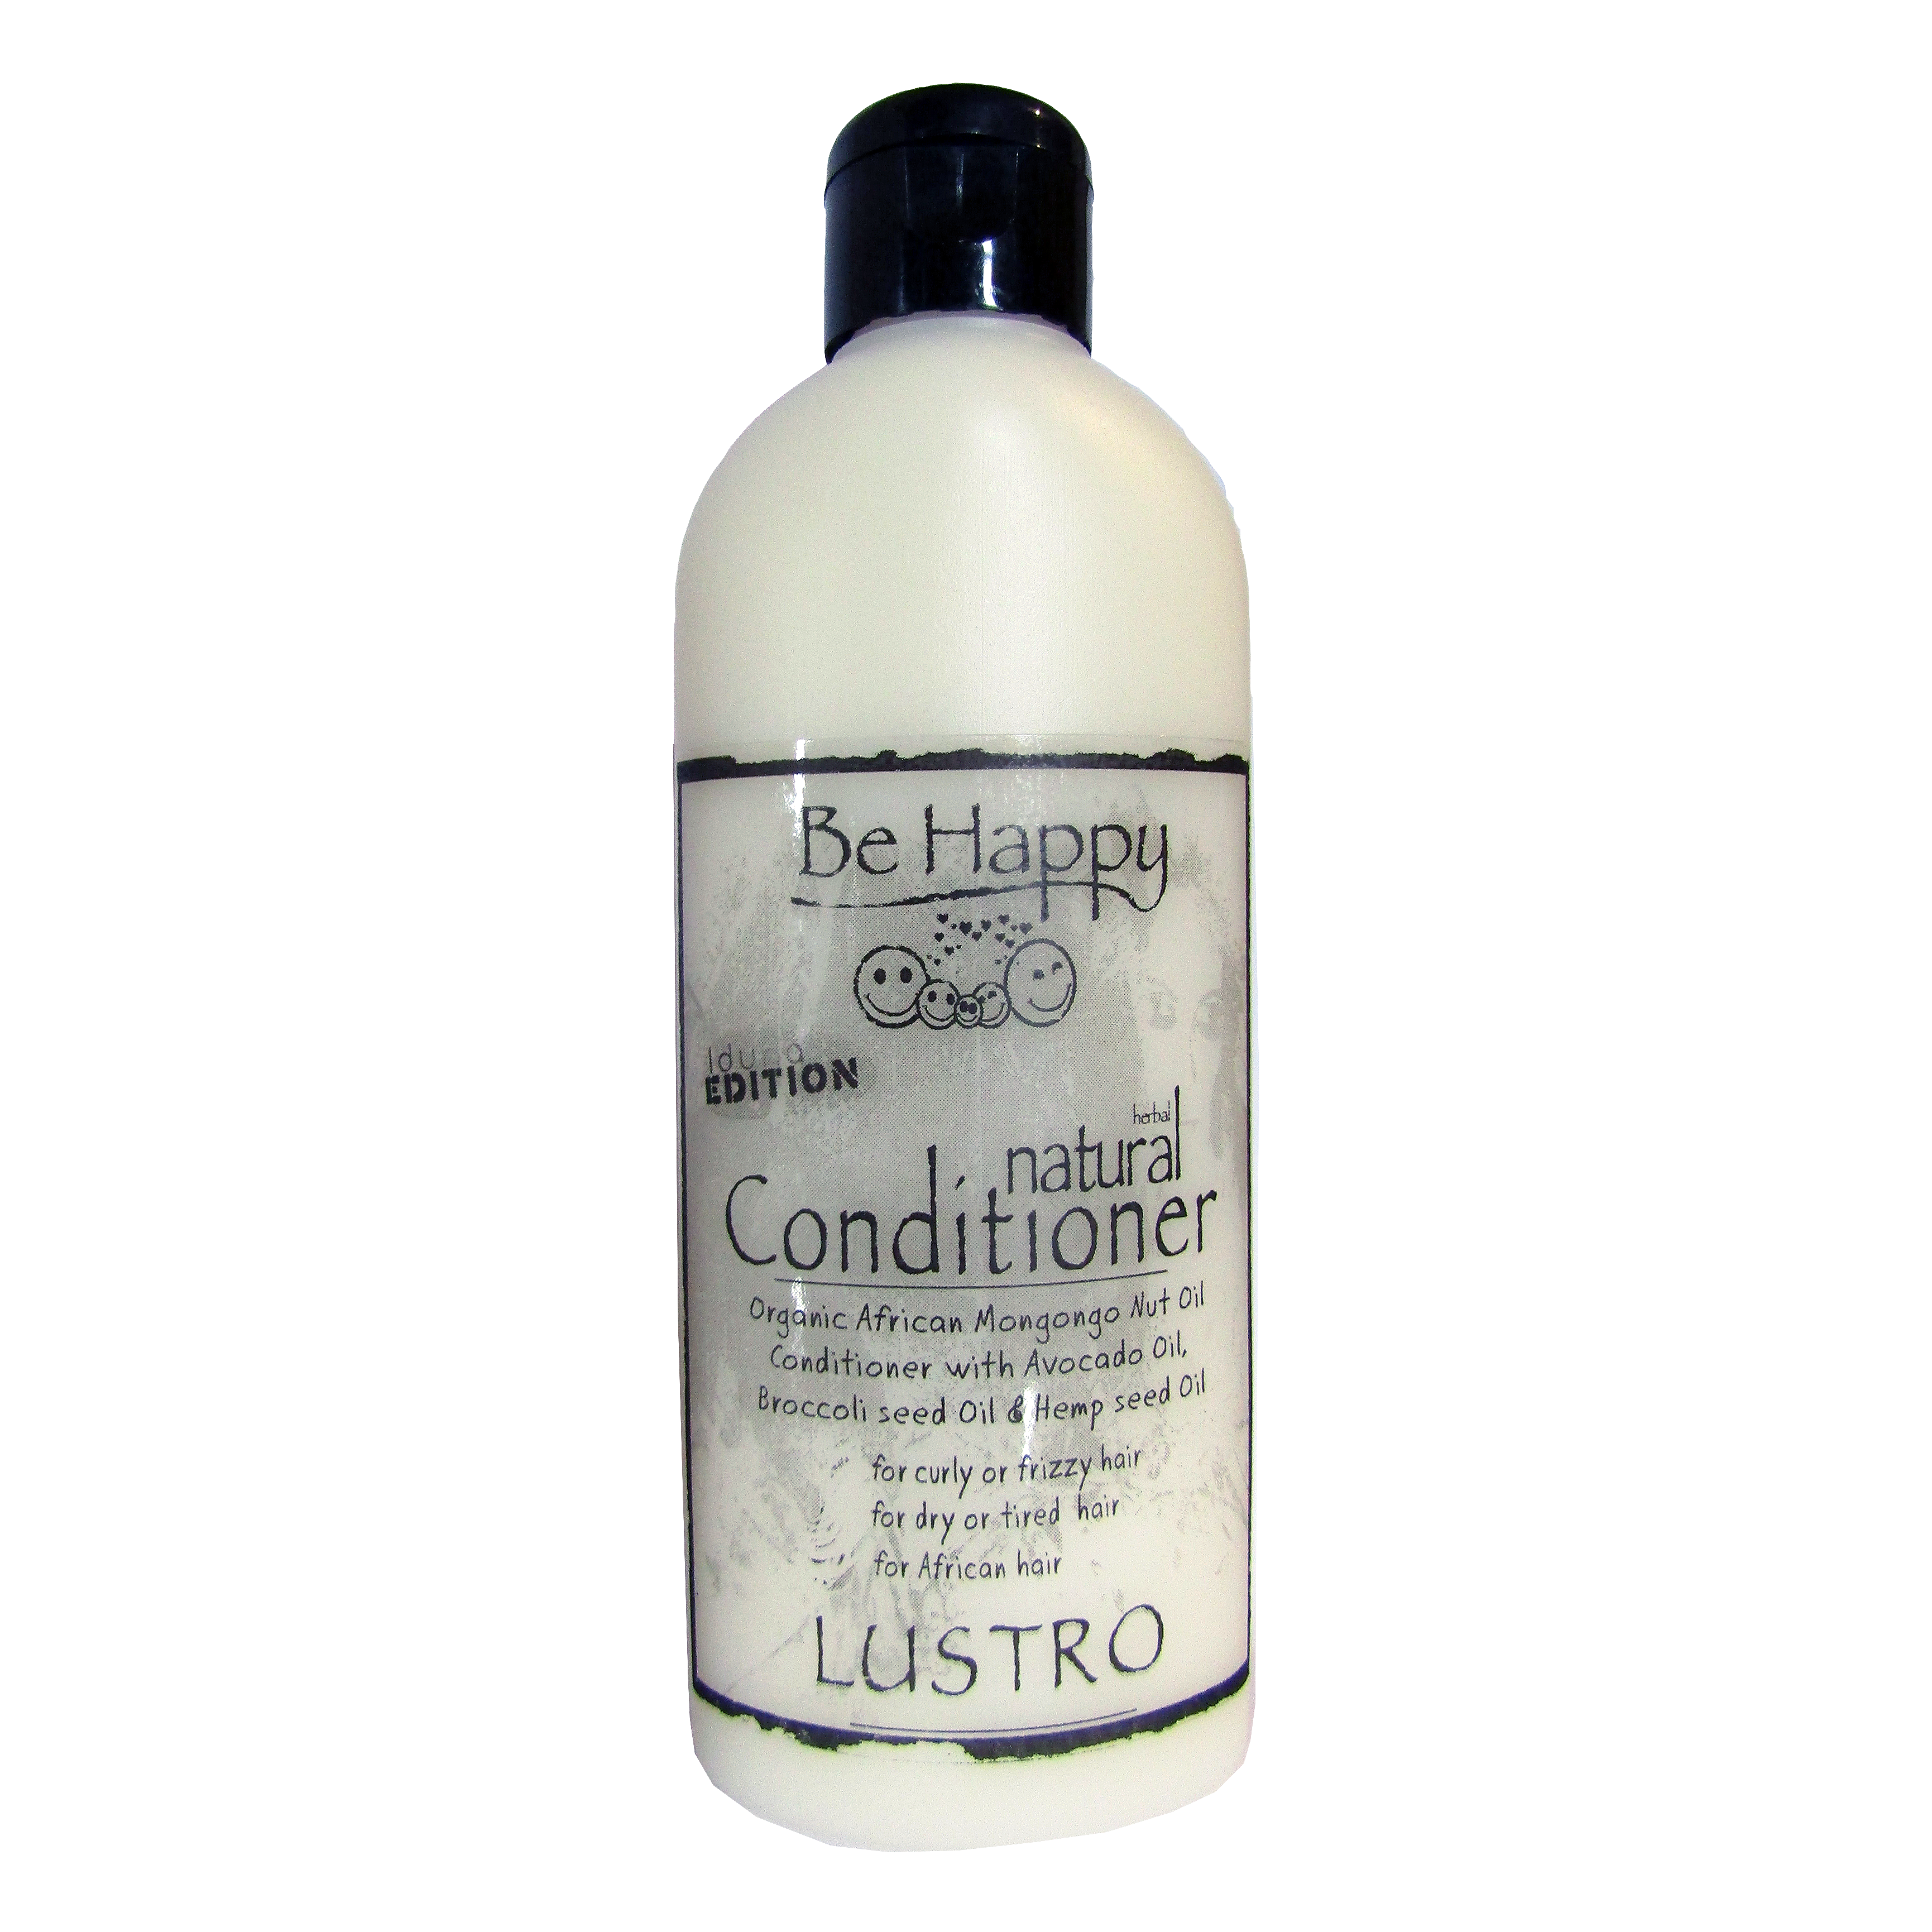 Conditioner  LUSTRO SPECIAL   - nourishing Mongongo Nut Oil Conditioner -  >> great! for ethnic hair  __ 200 ml _